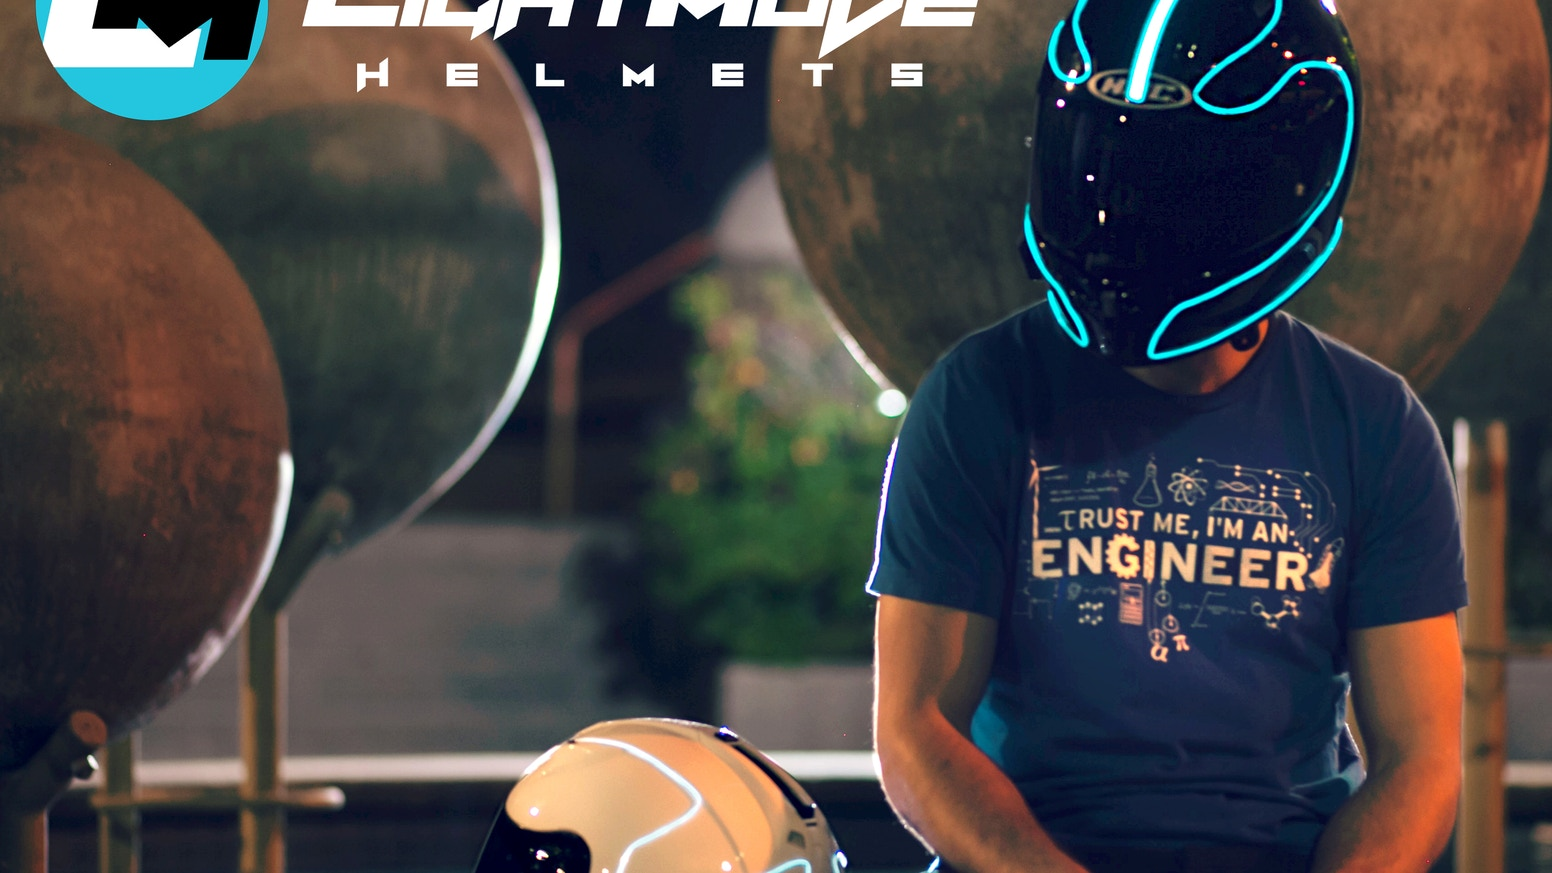 lightmode electroluminescent motorcycle helmets by thomas